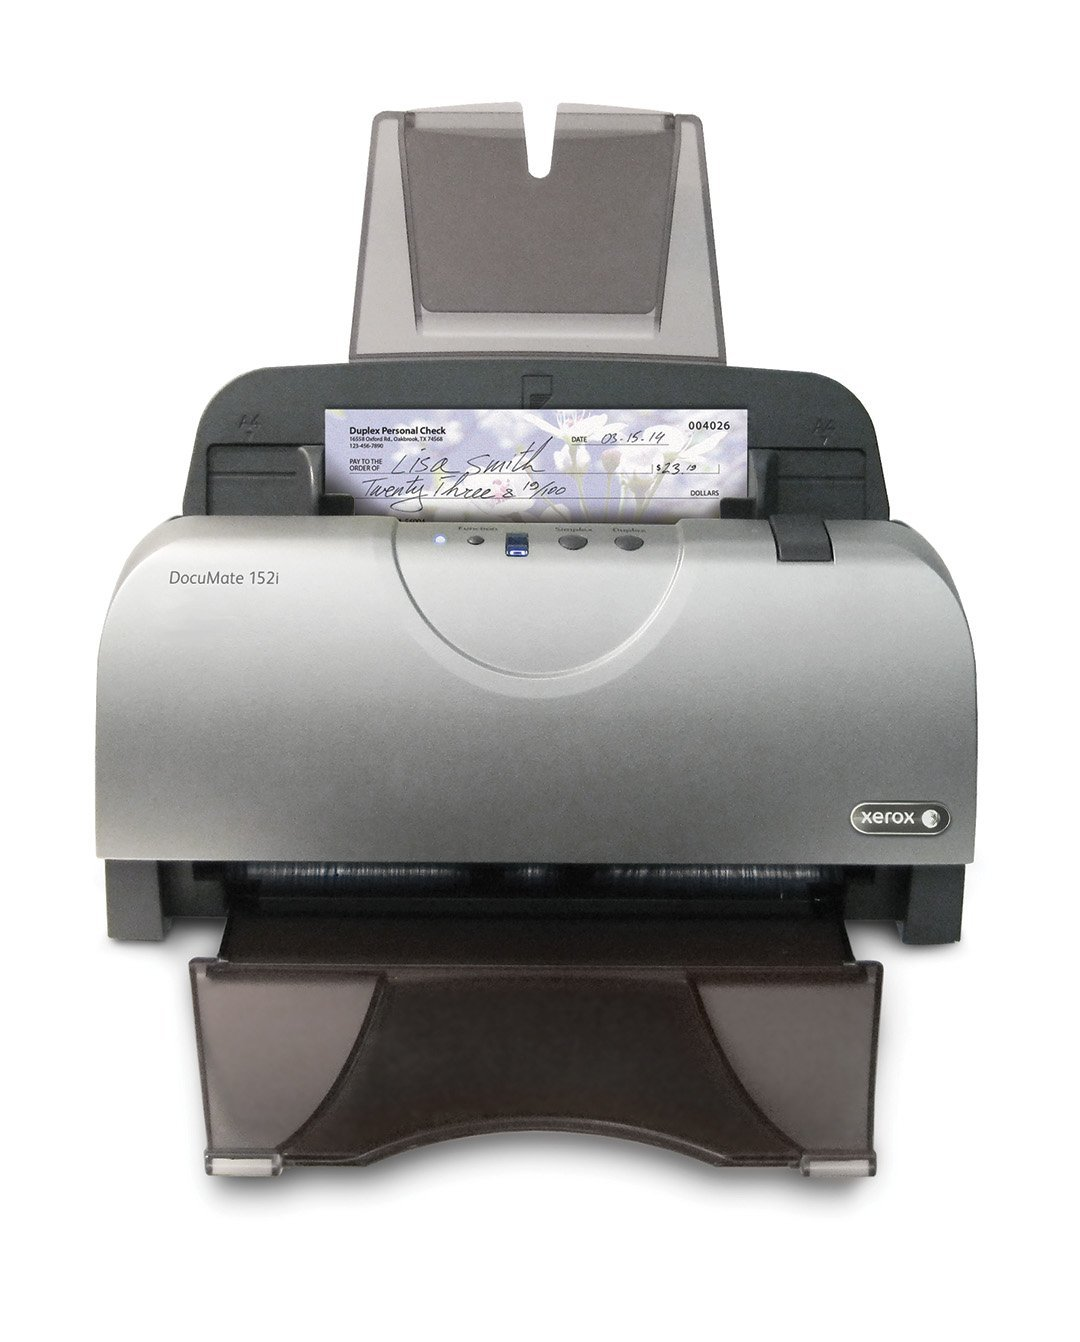 Laser On Without Printing Fault Xerox